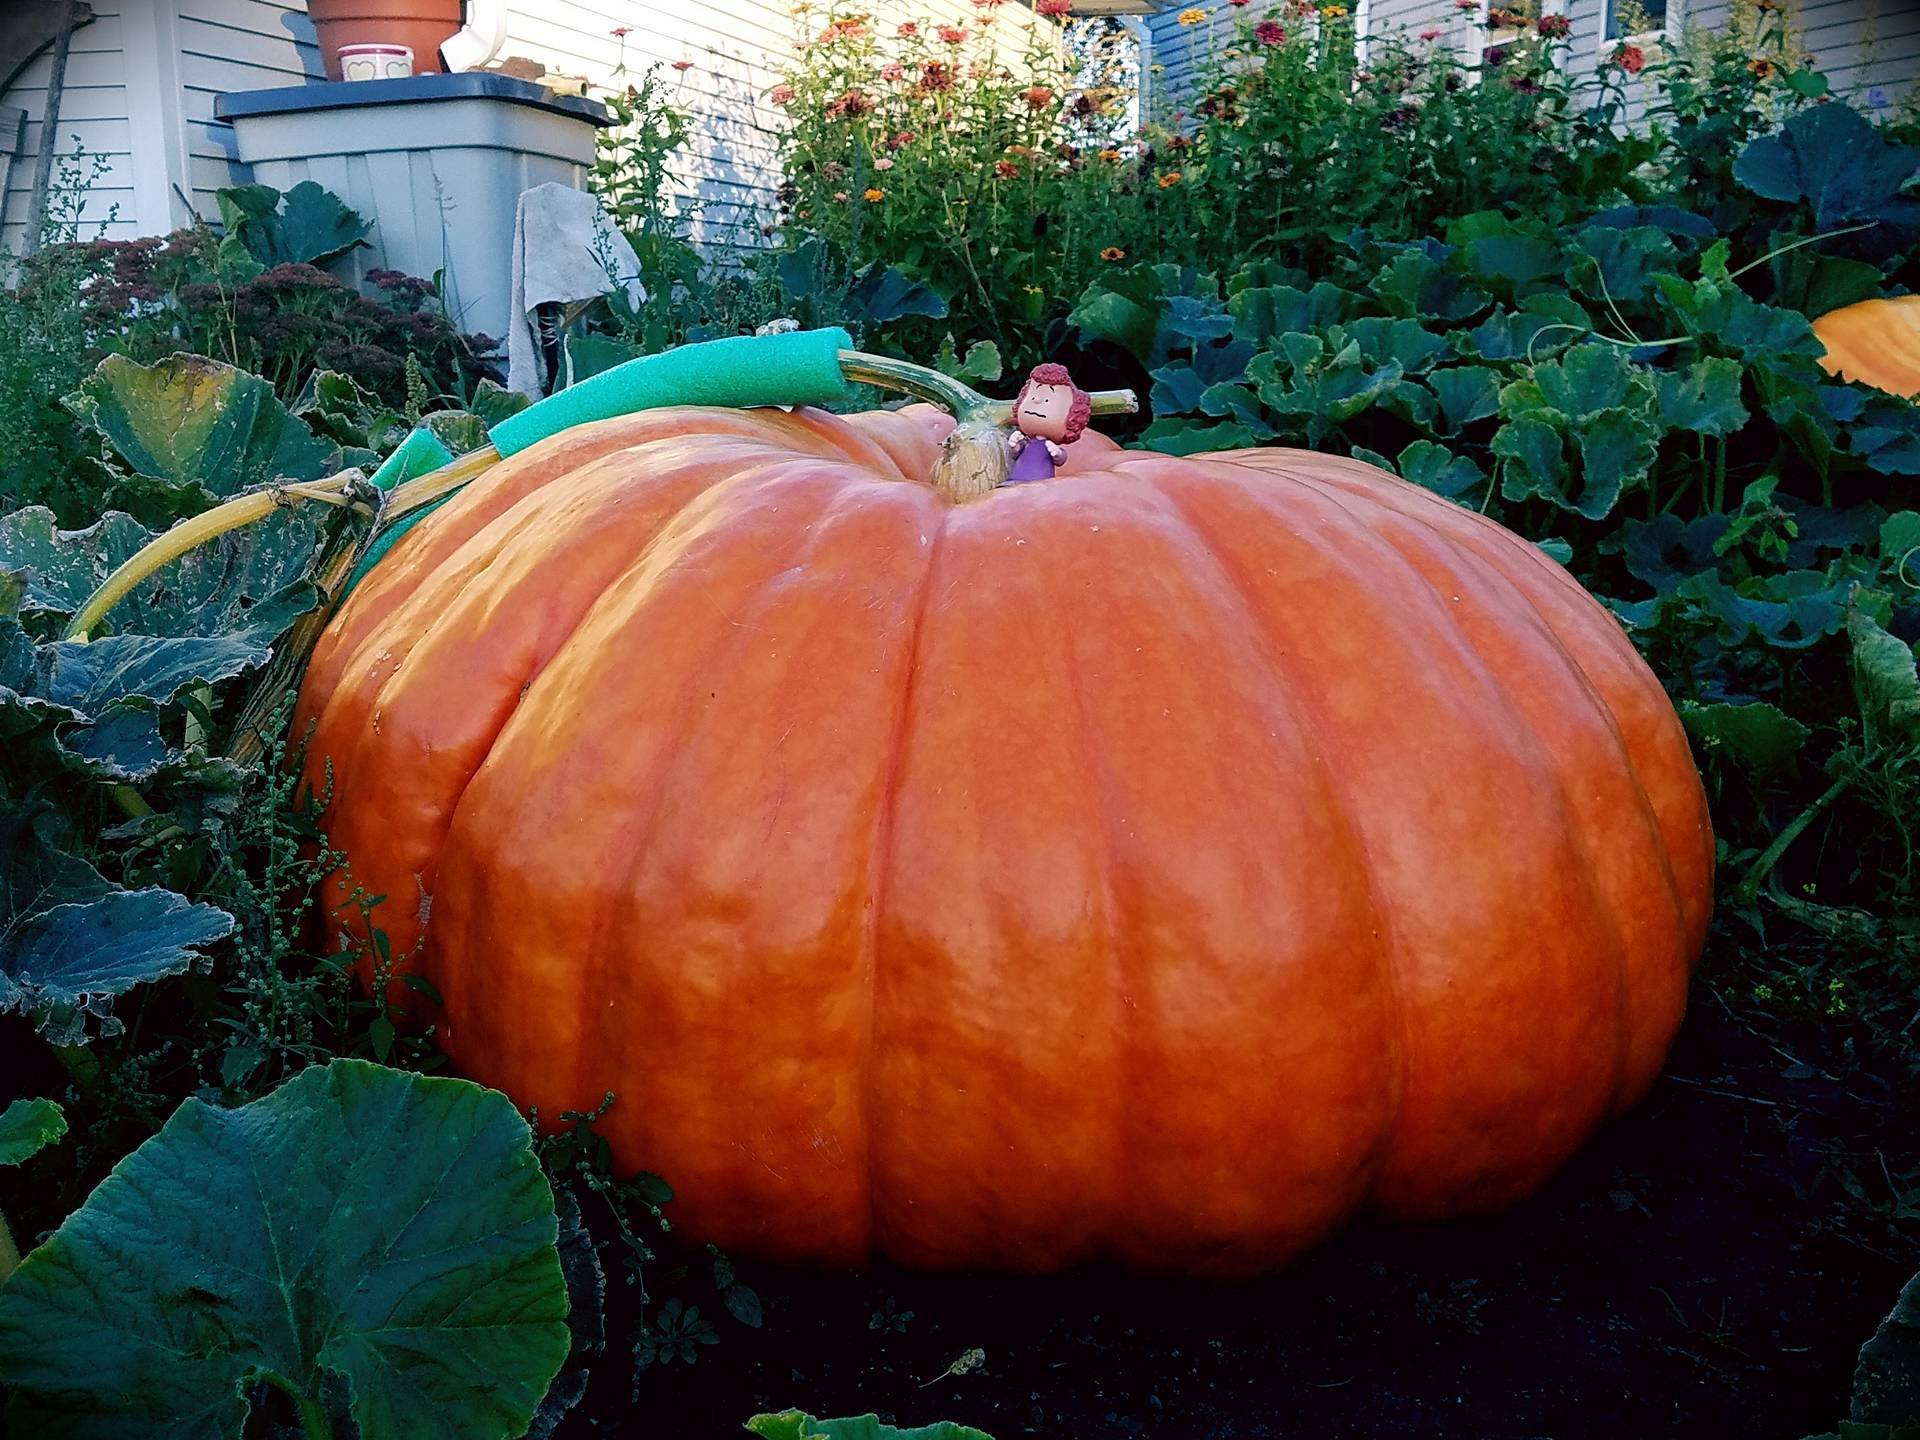 Cinderella, the giant pumpkin, will soon be picked for the season. (Courtesy: Shannon Engel)